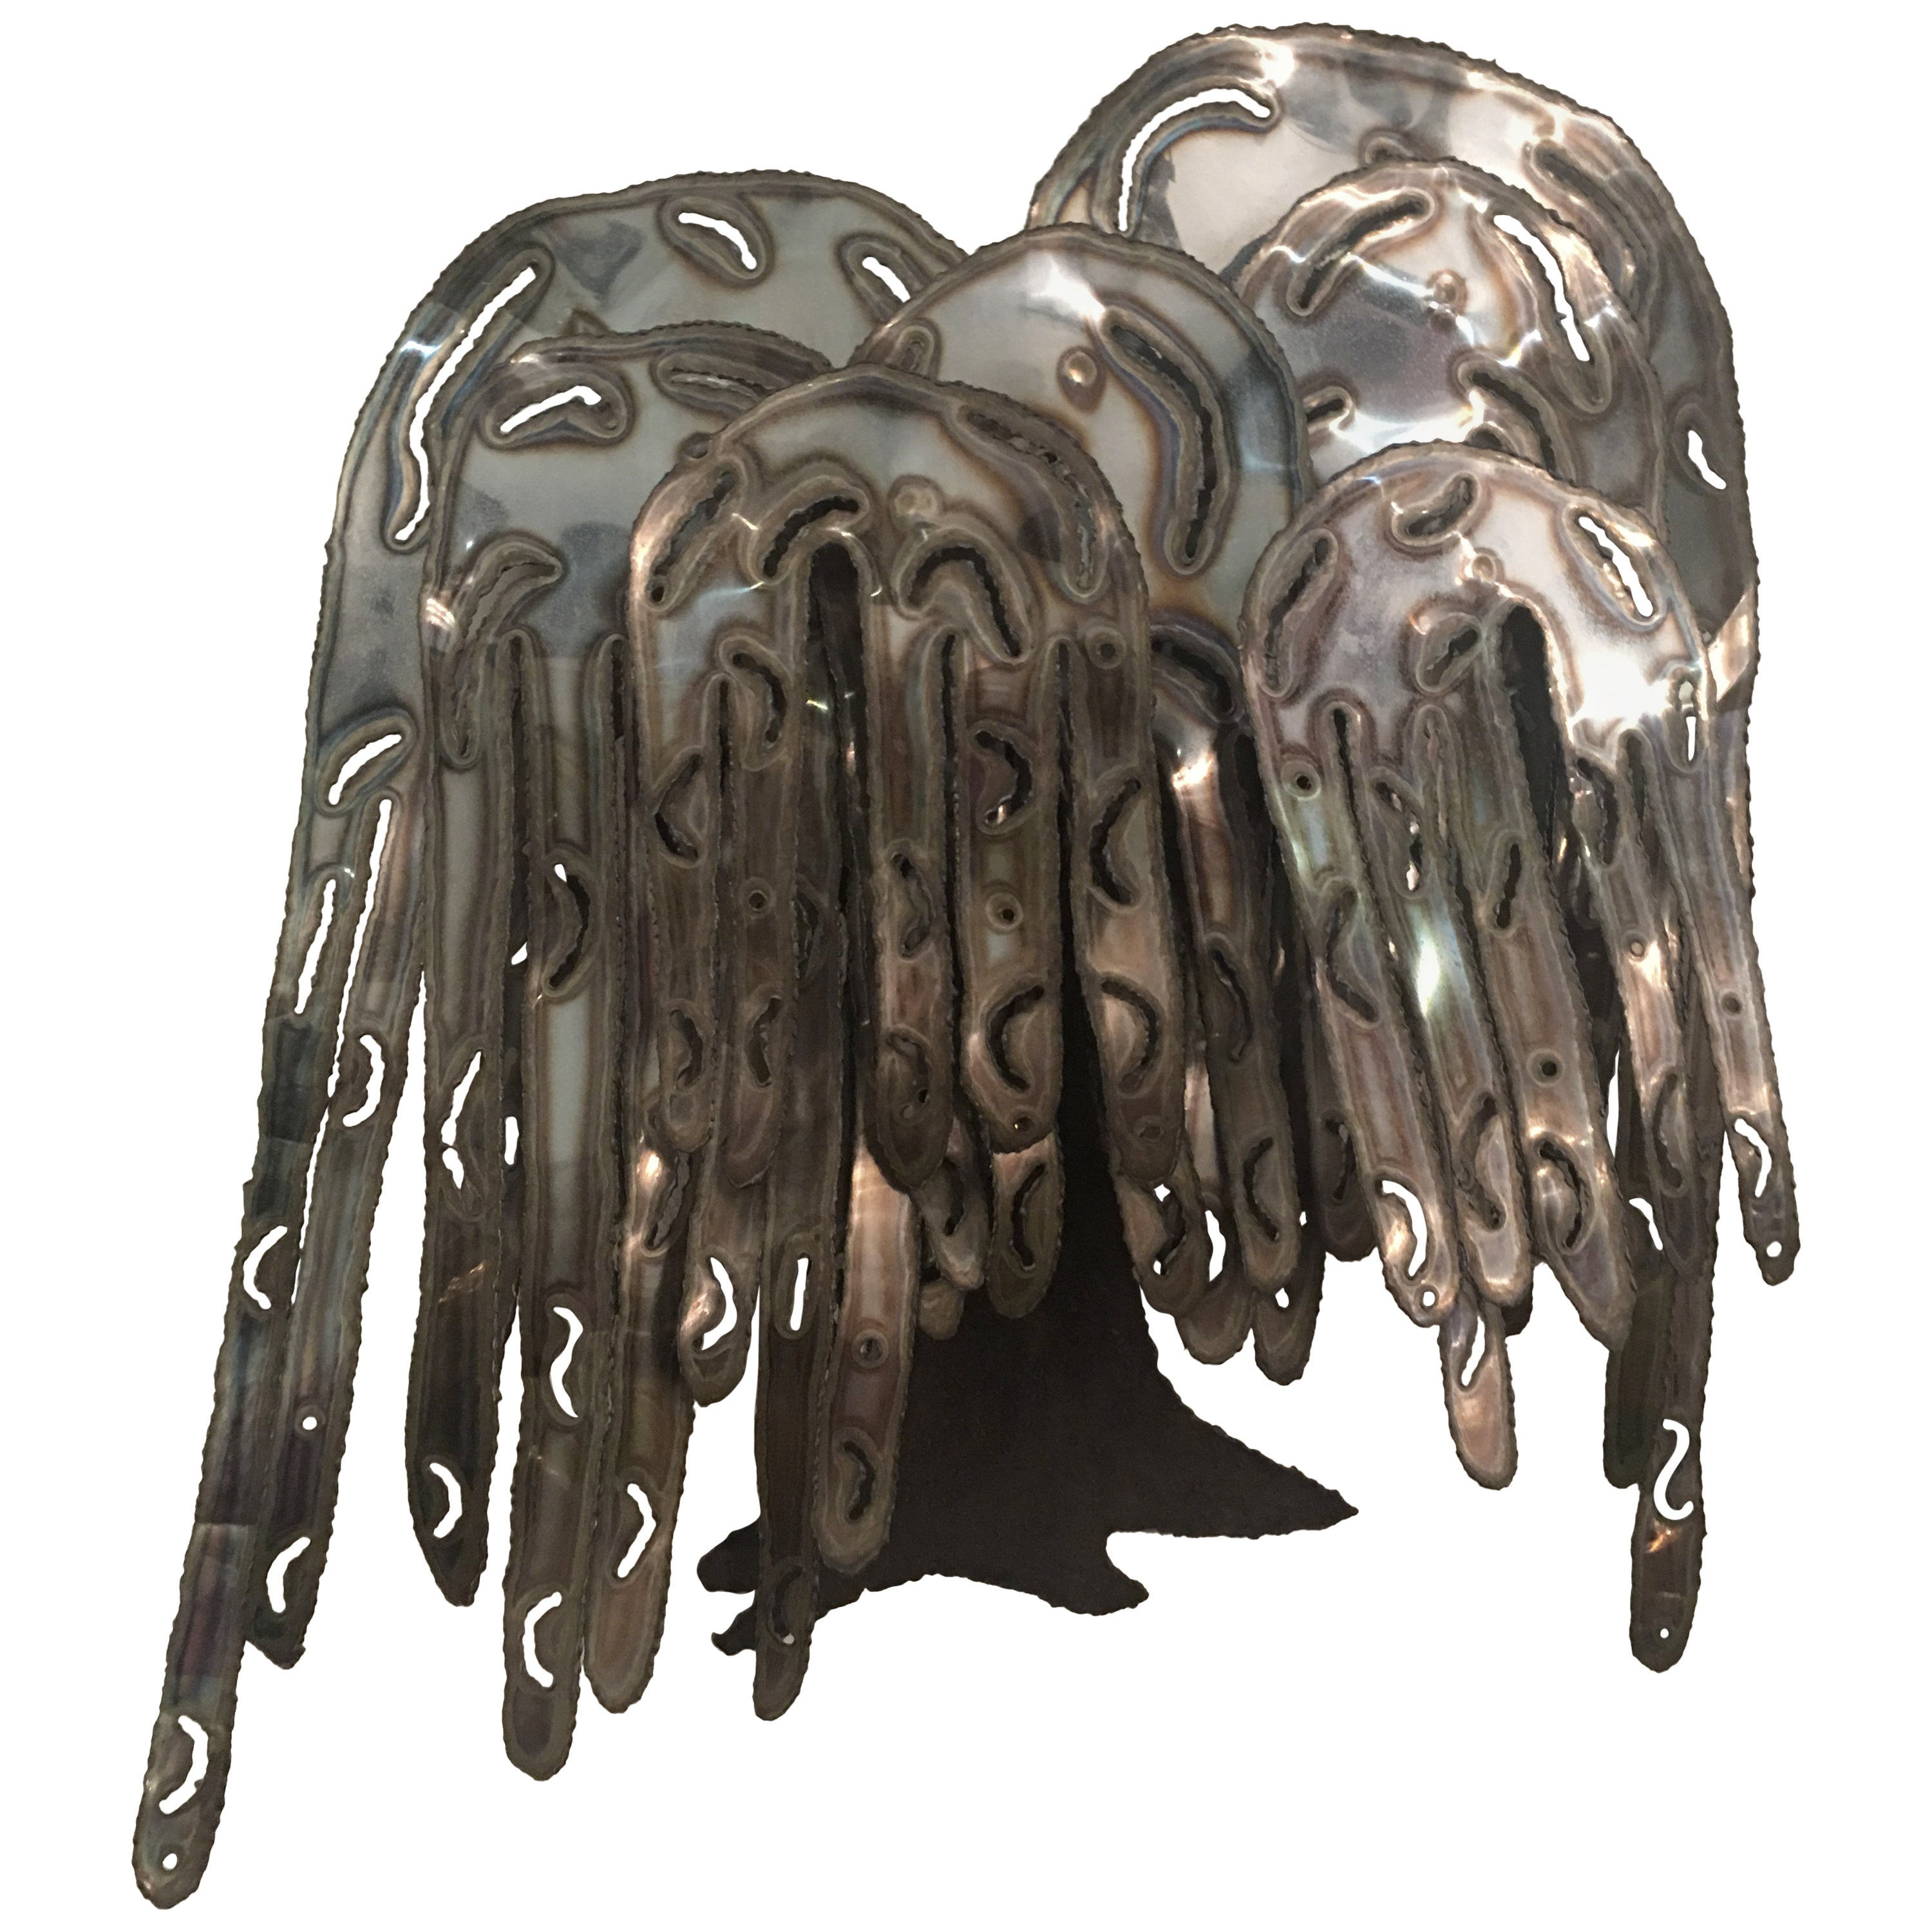 Weeping Willow Tree Metal Wall Art Mid-Century Modern Curtis Jere Style